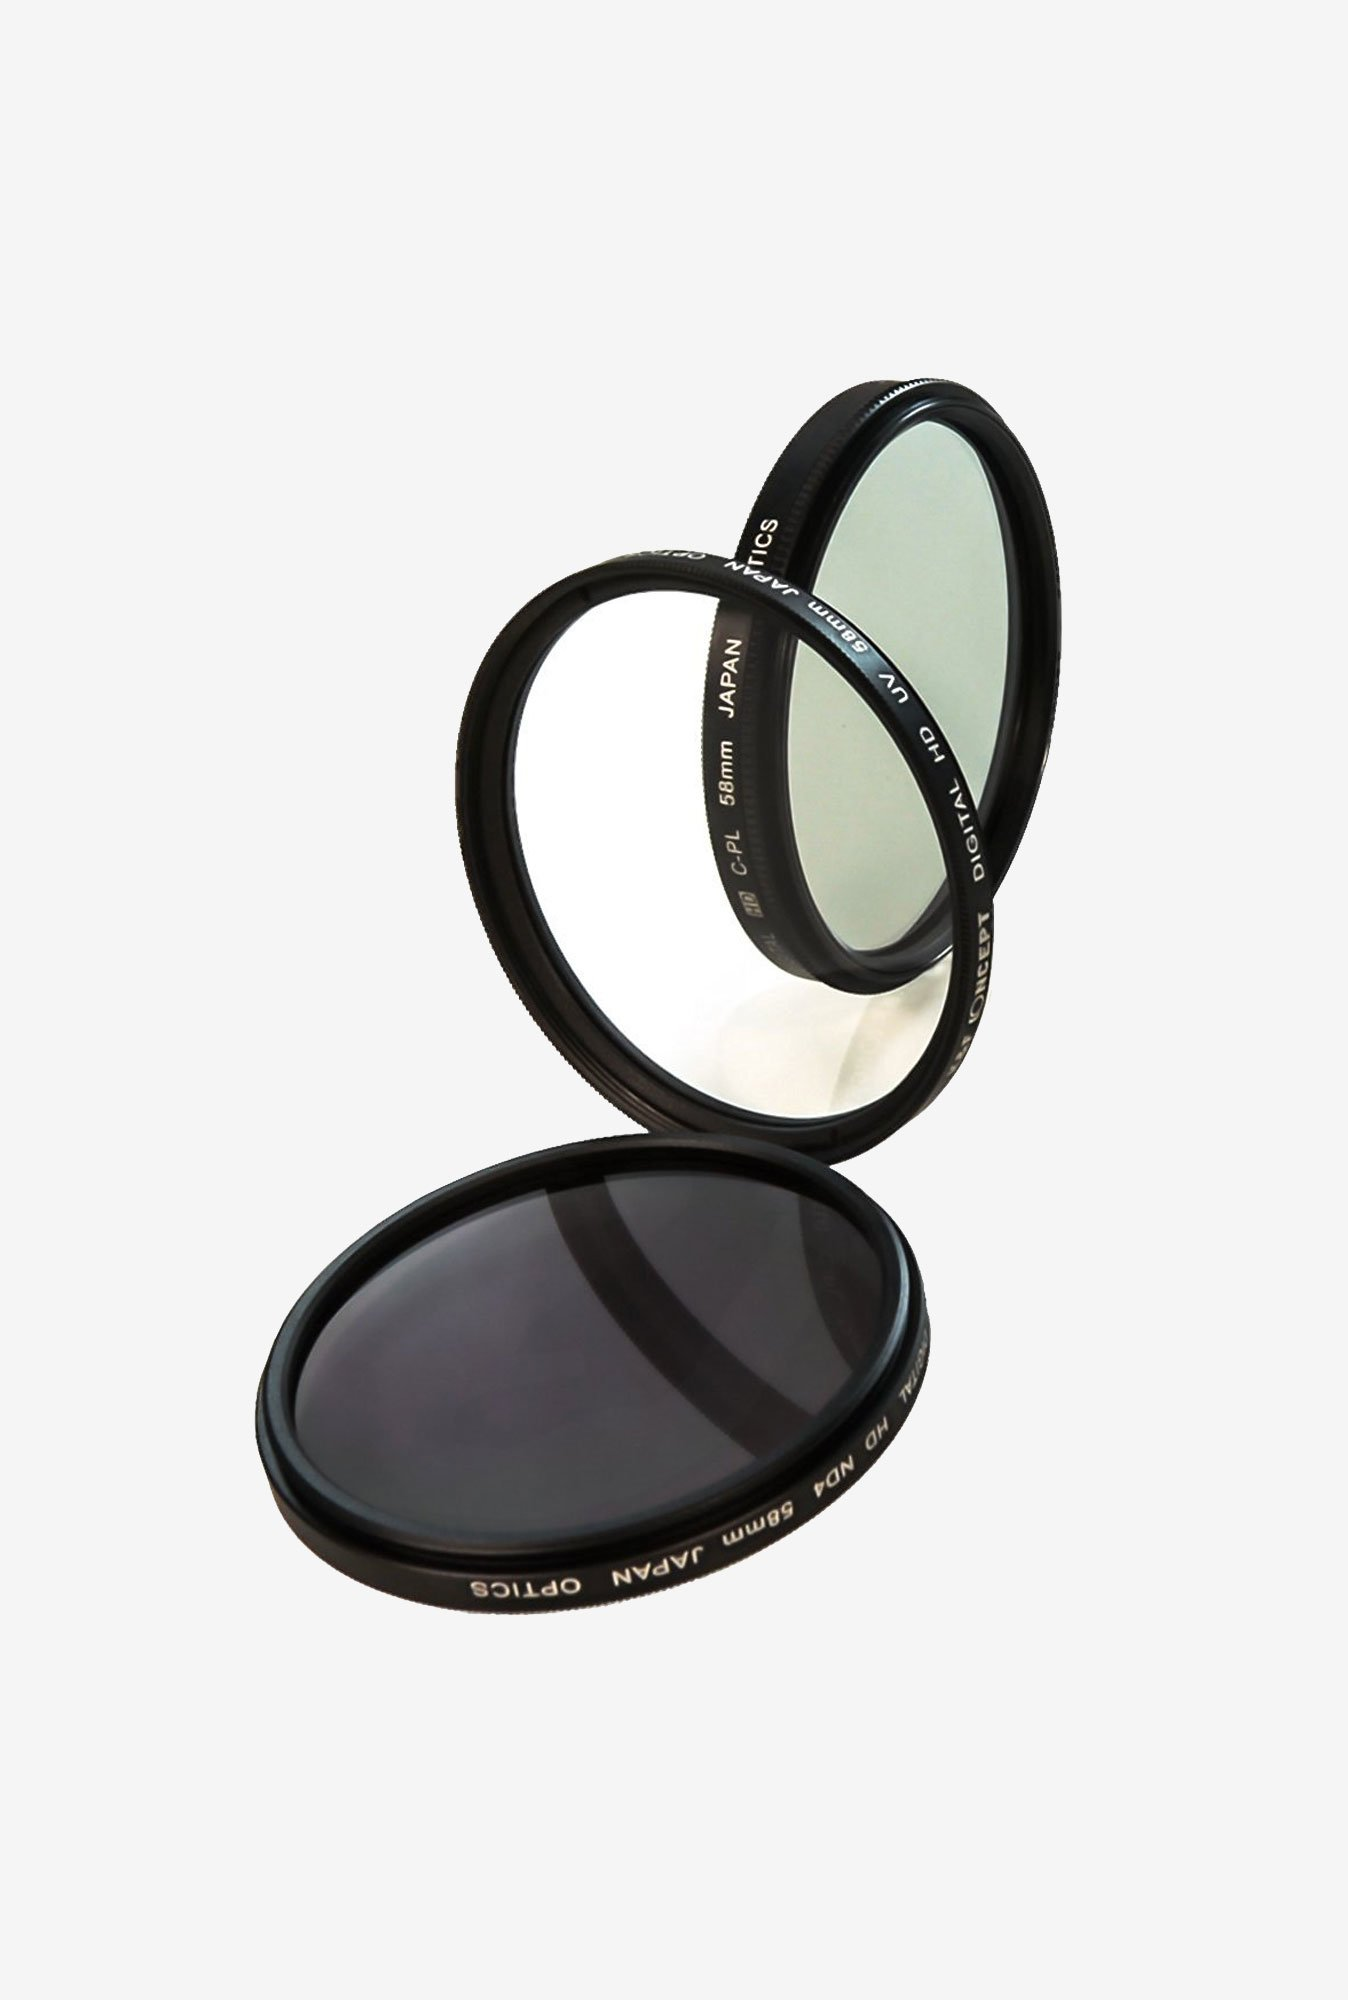 Cam Design 58 mm Professional Lens Filter Accessory Kit